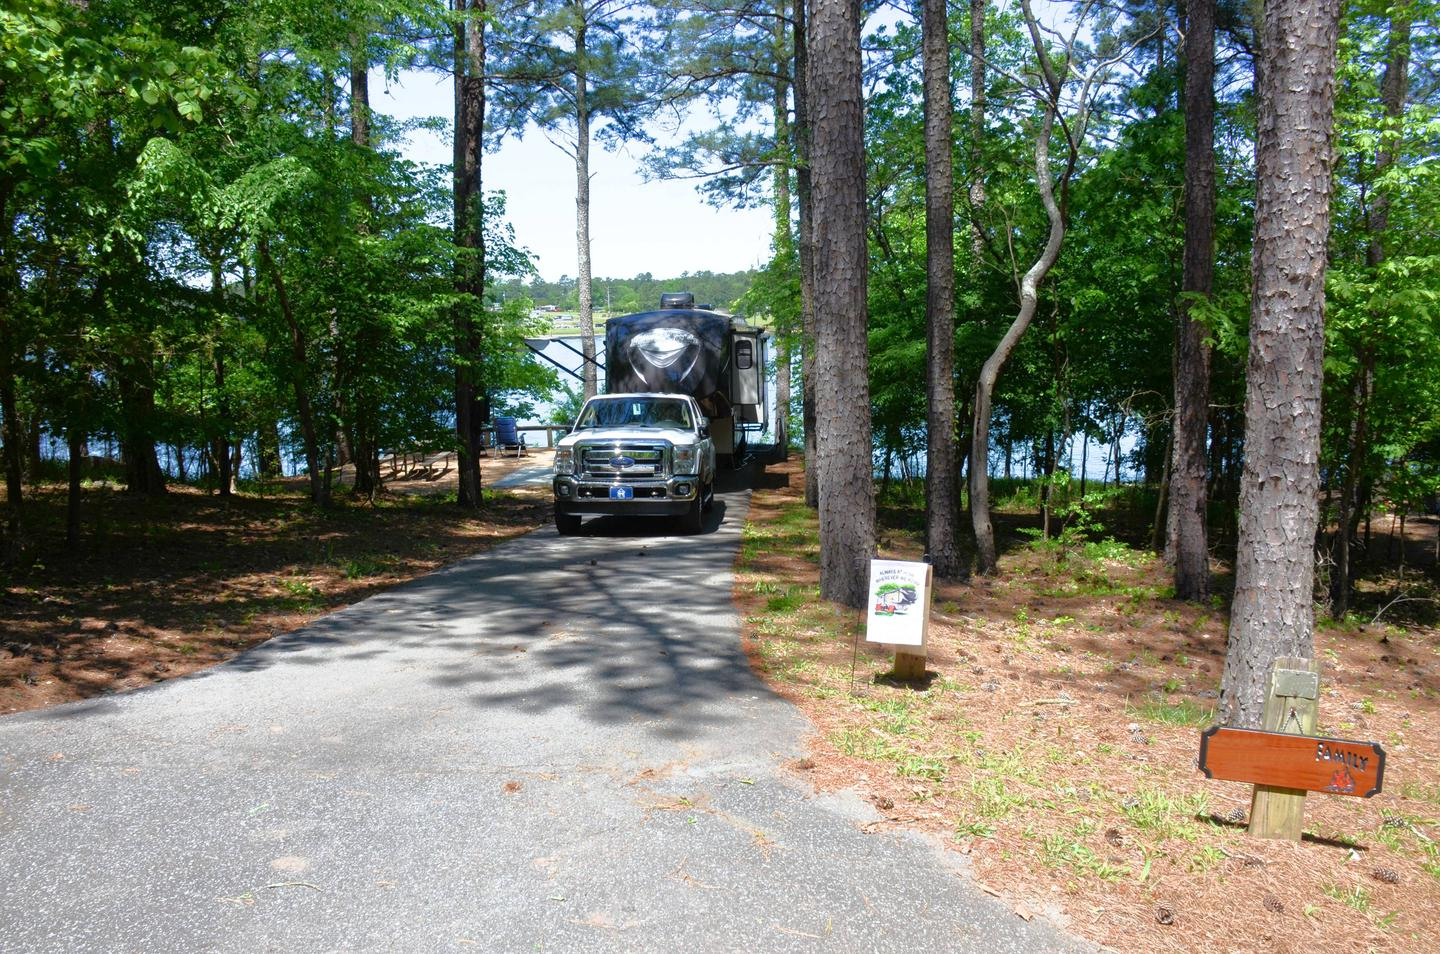 Driveway entrance angle/slope, utilities-side clearance.McKinney Campground, campsite 89.